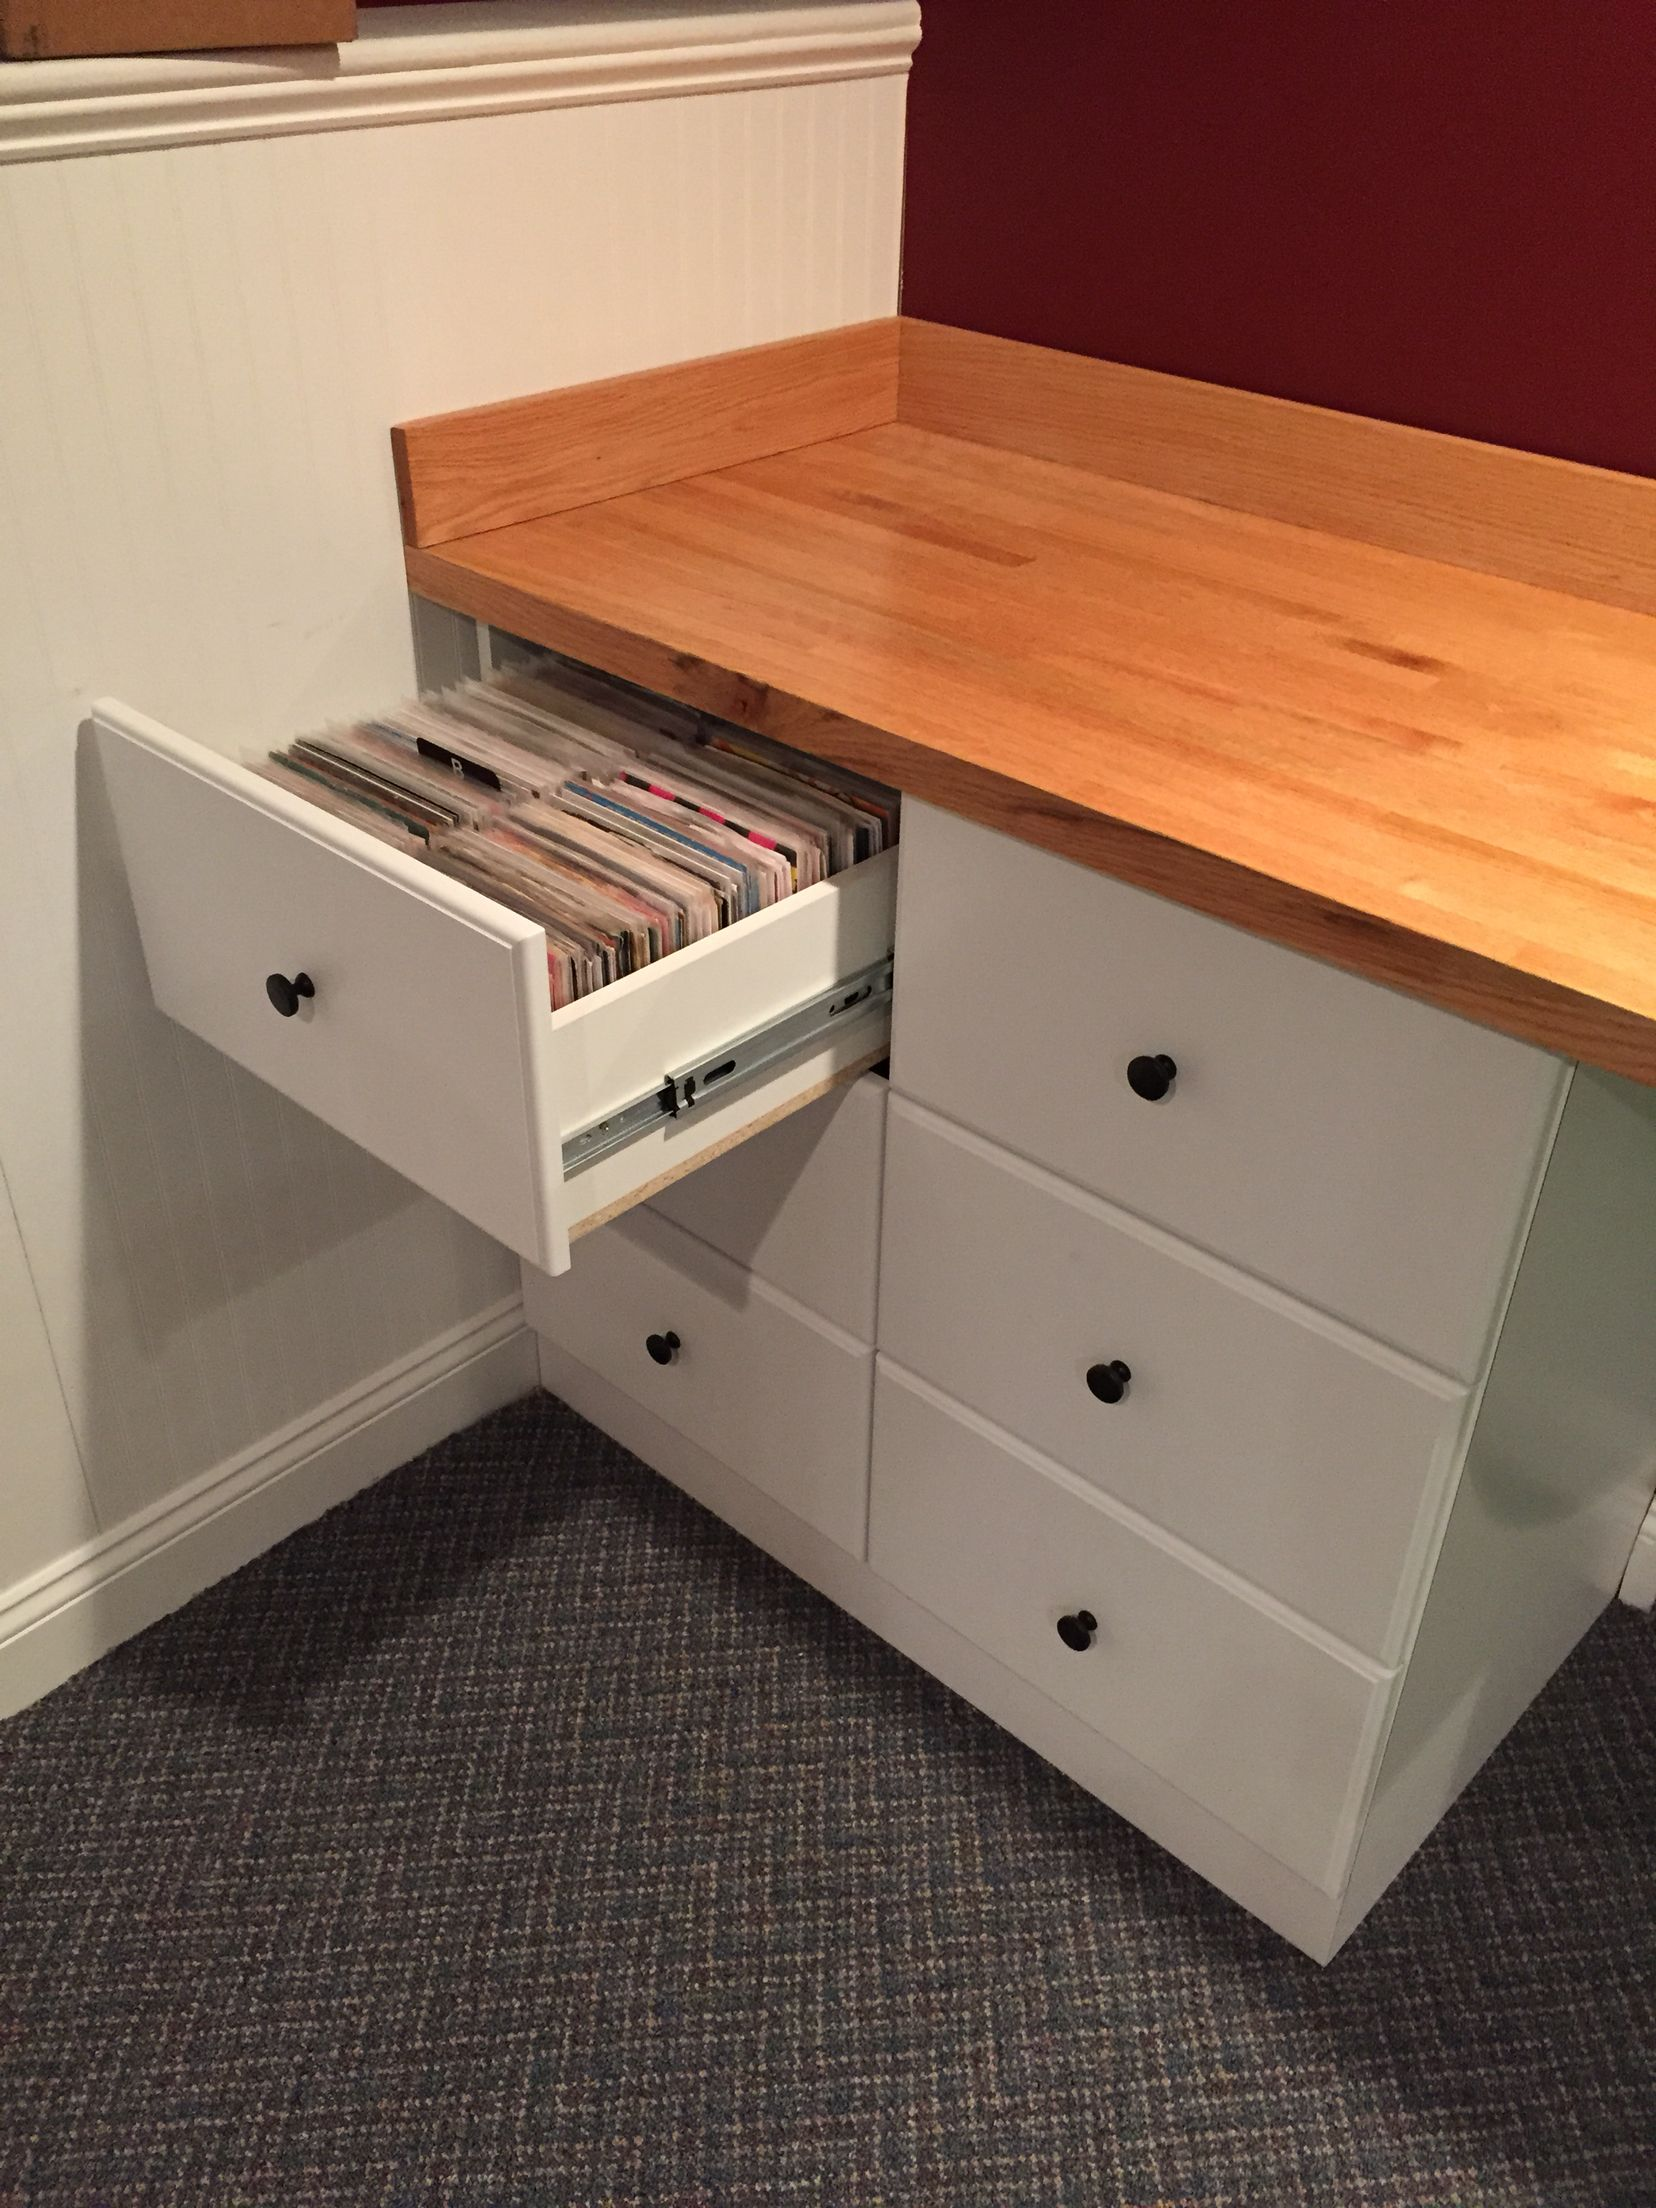 Custom Drawer Unit For 45rpm Record Storage. Holds 3,000 45u0027s